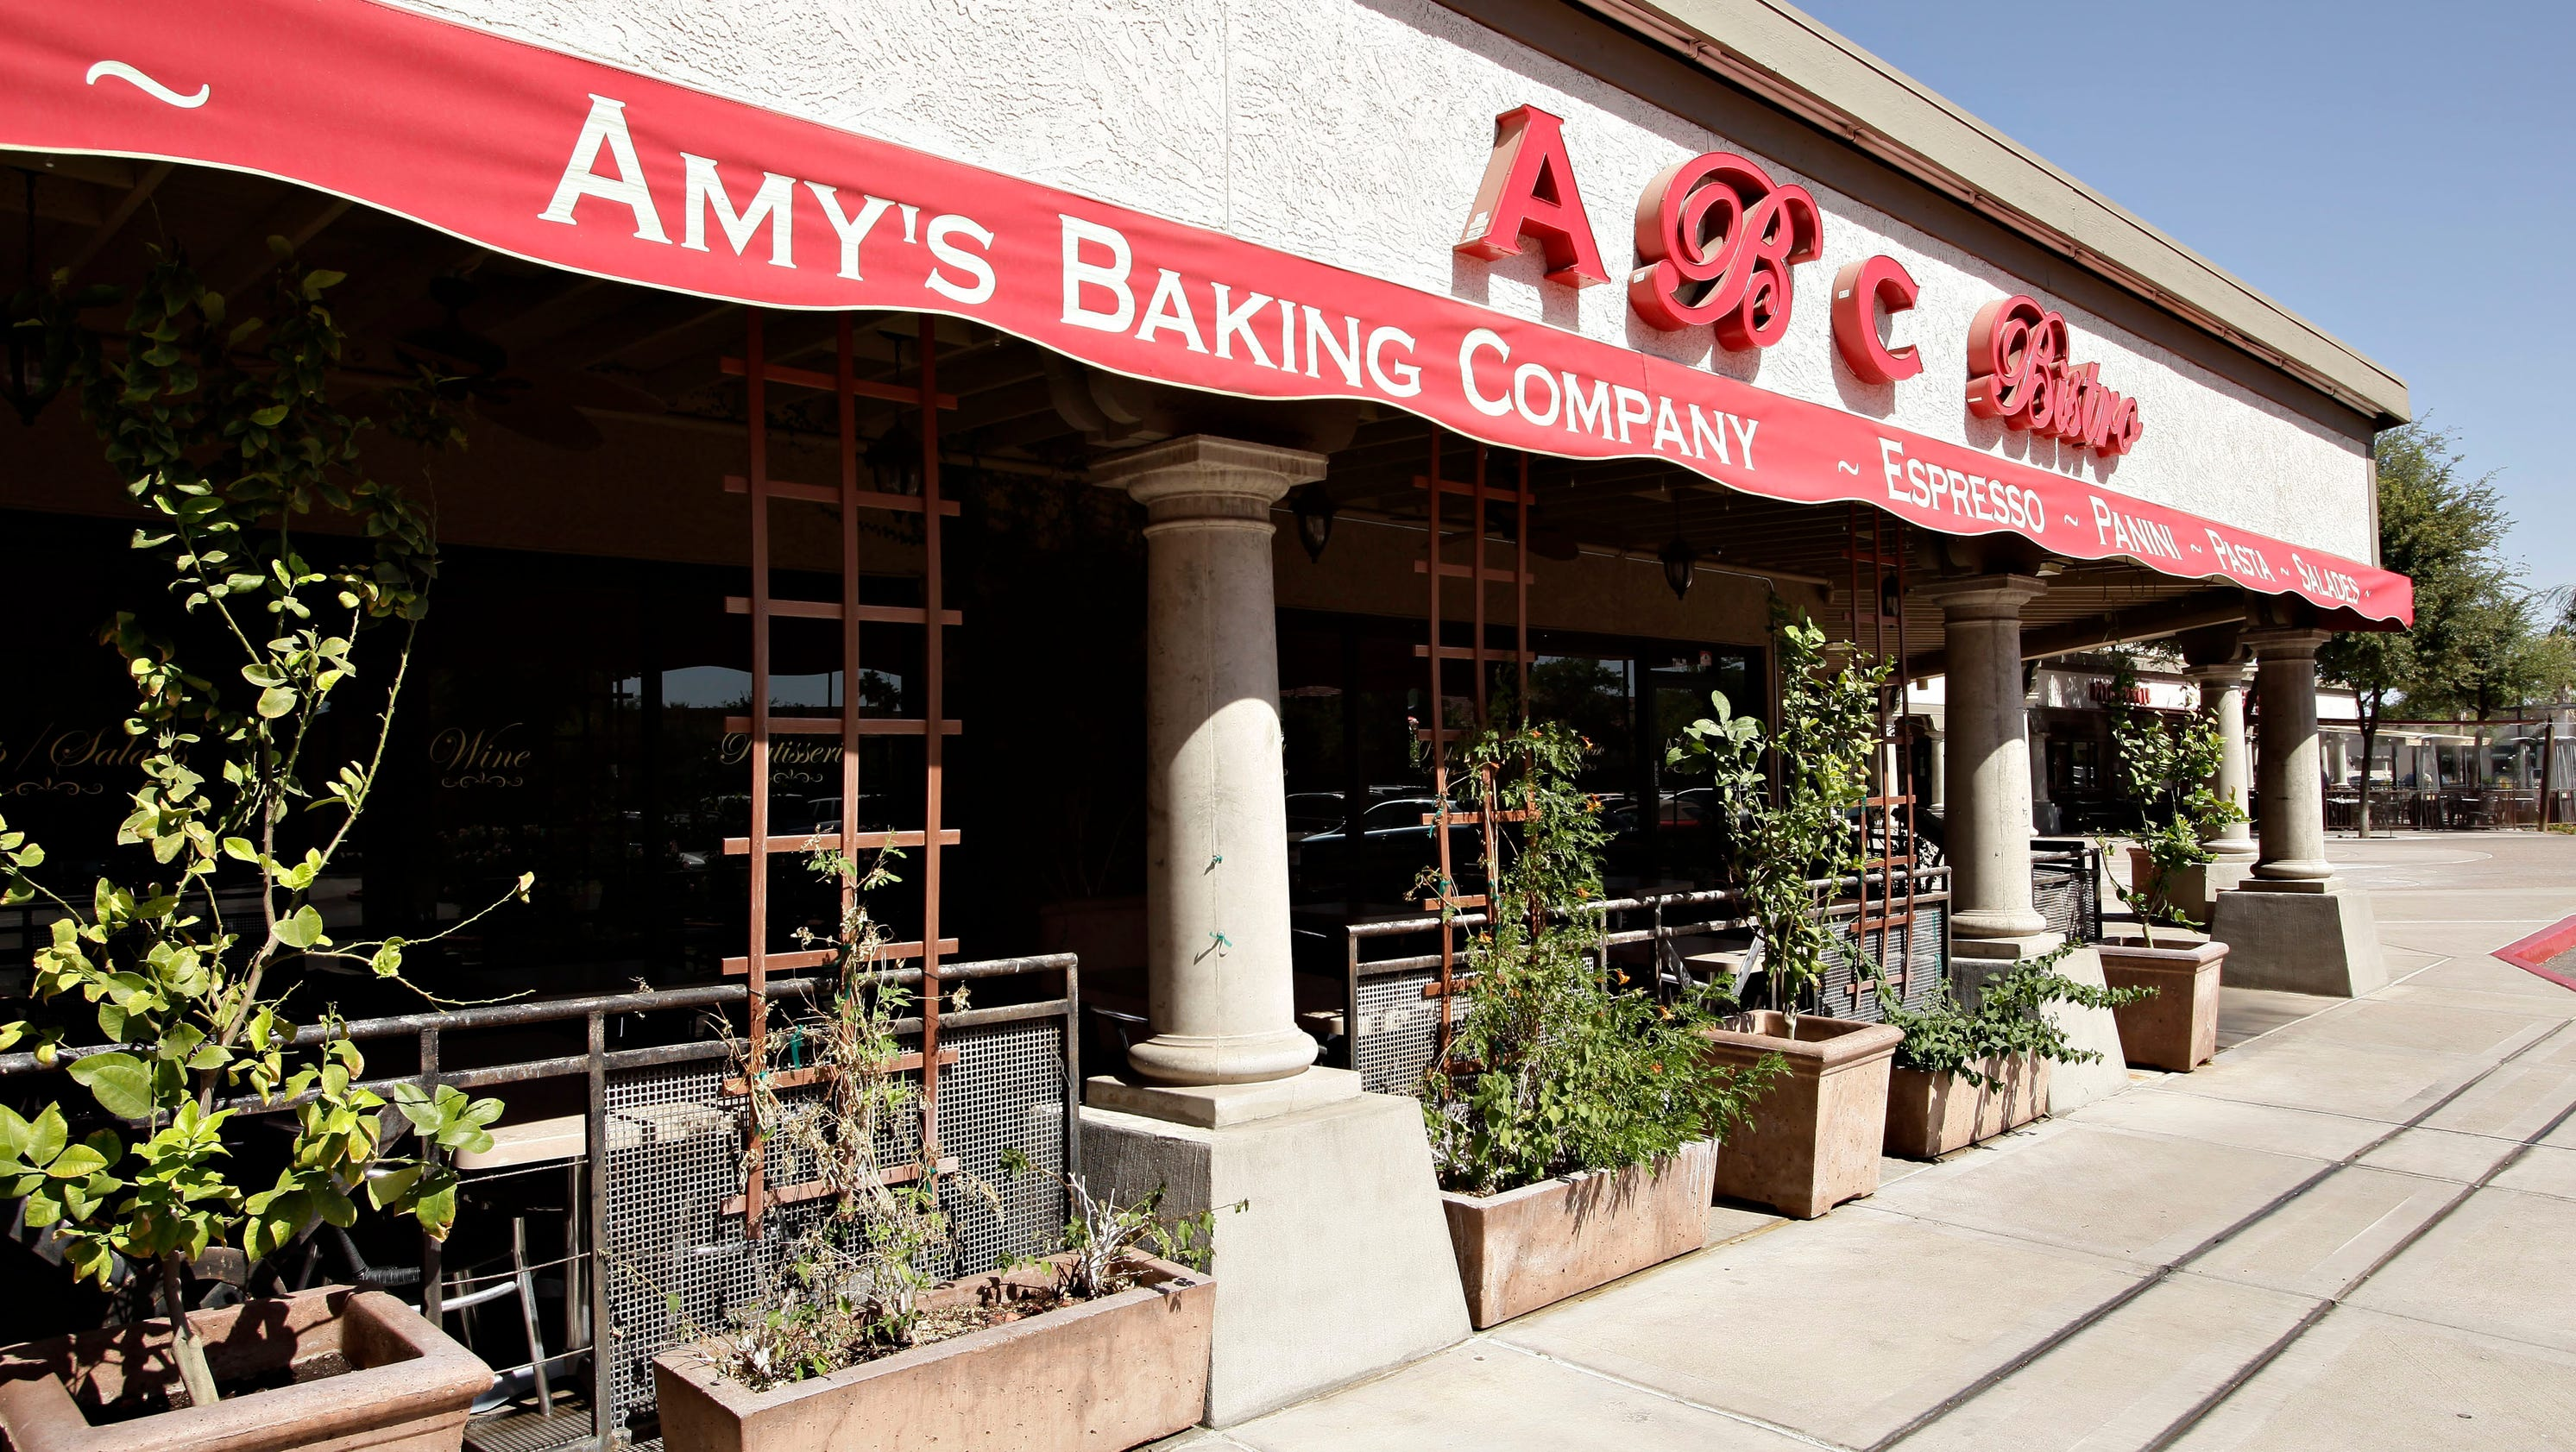 amy 39 s baking company of 39 kitchen nightmares 39 notoriety to